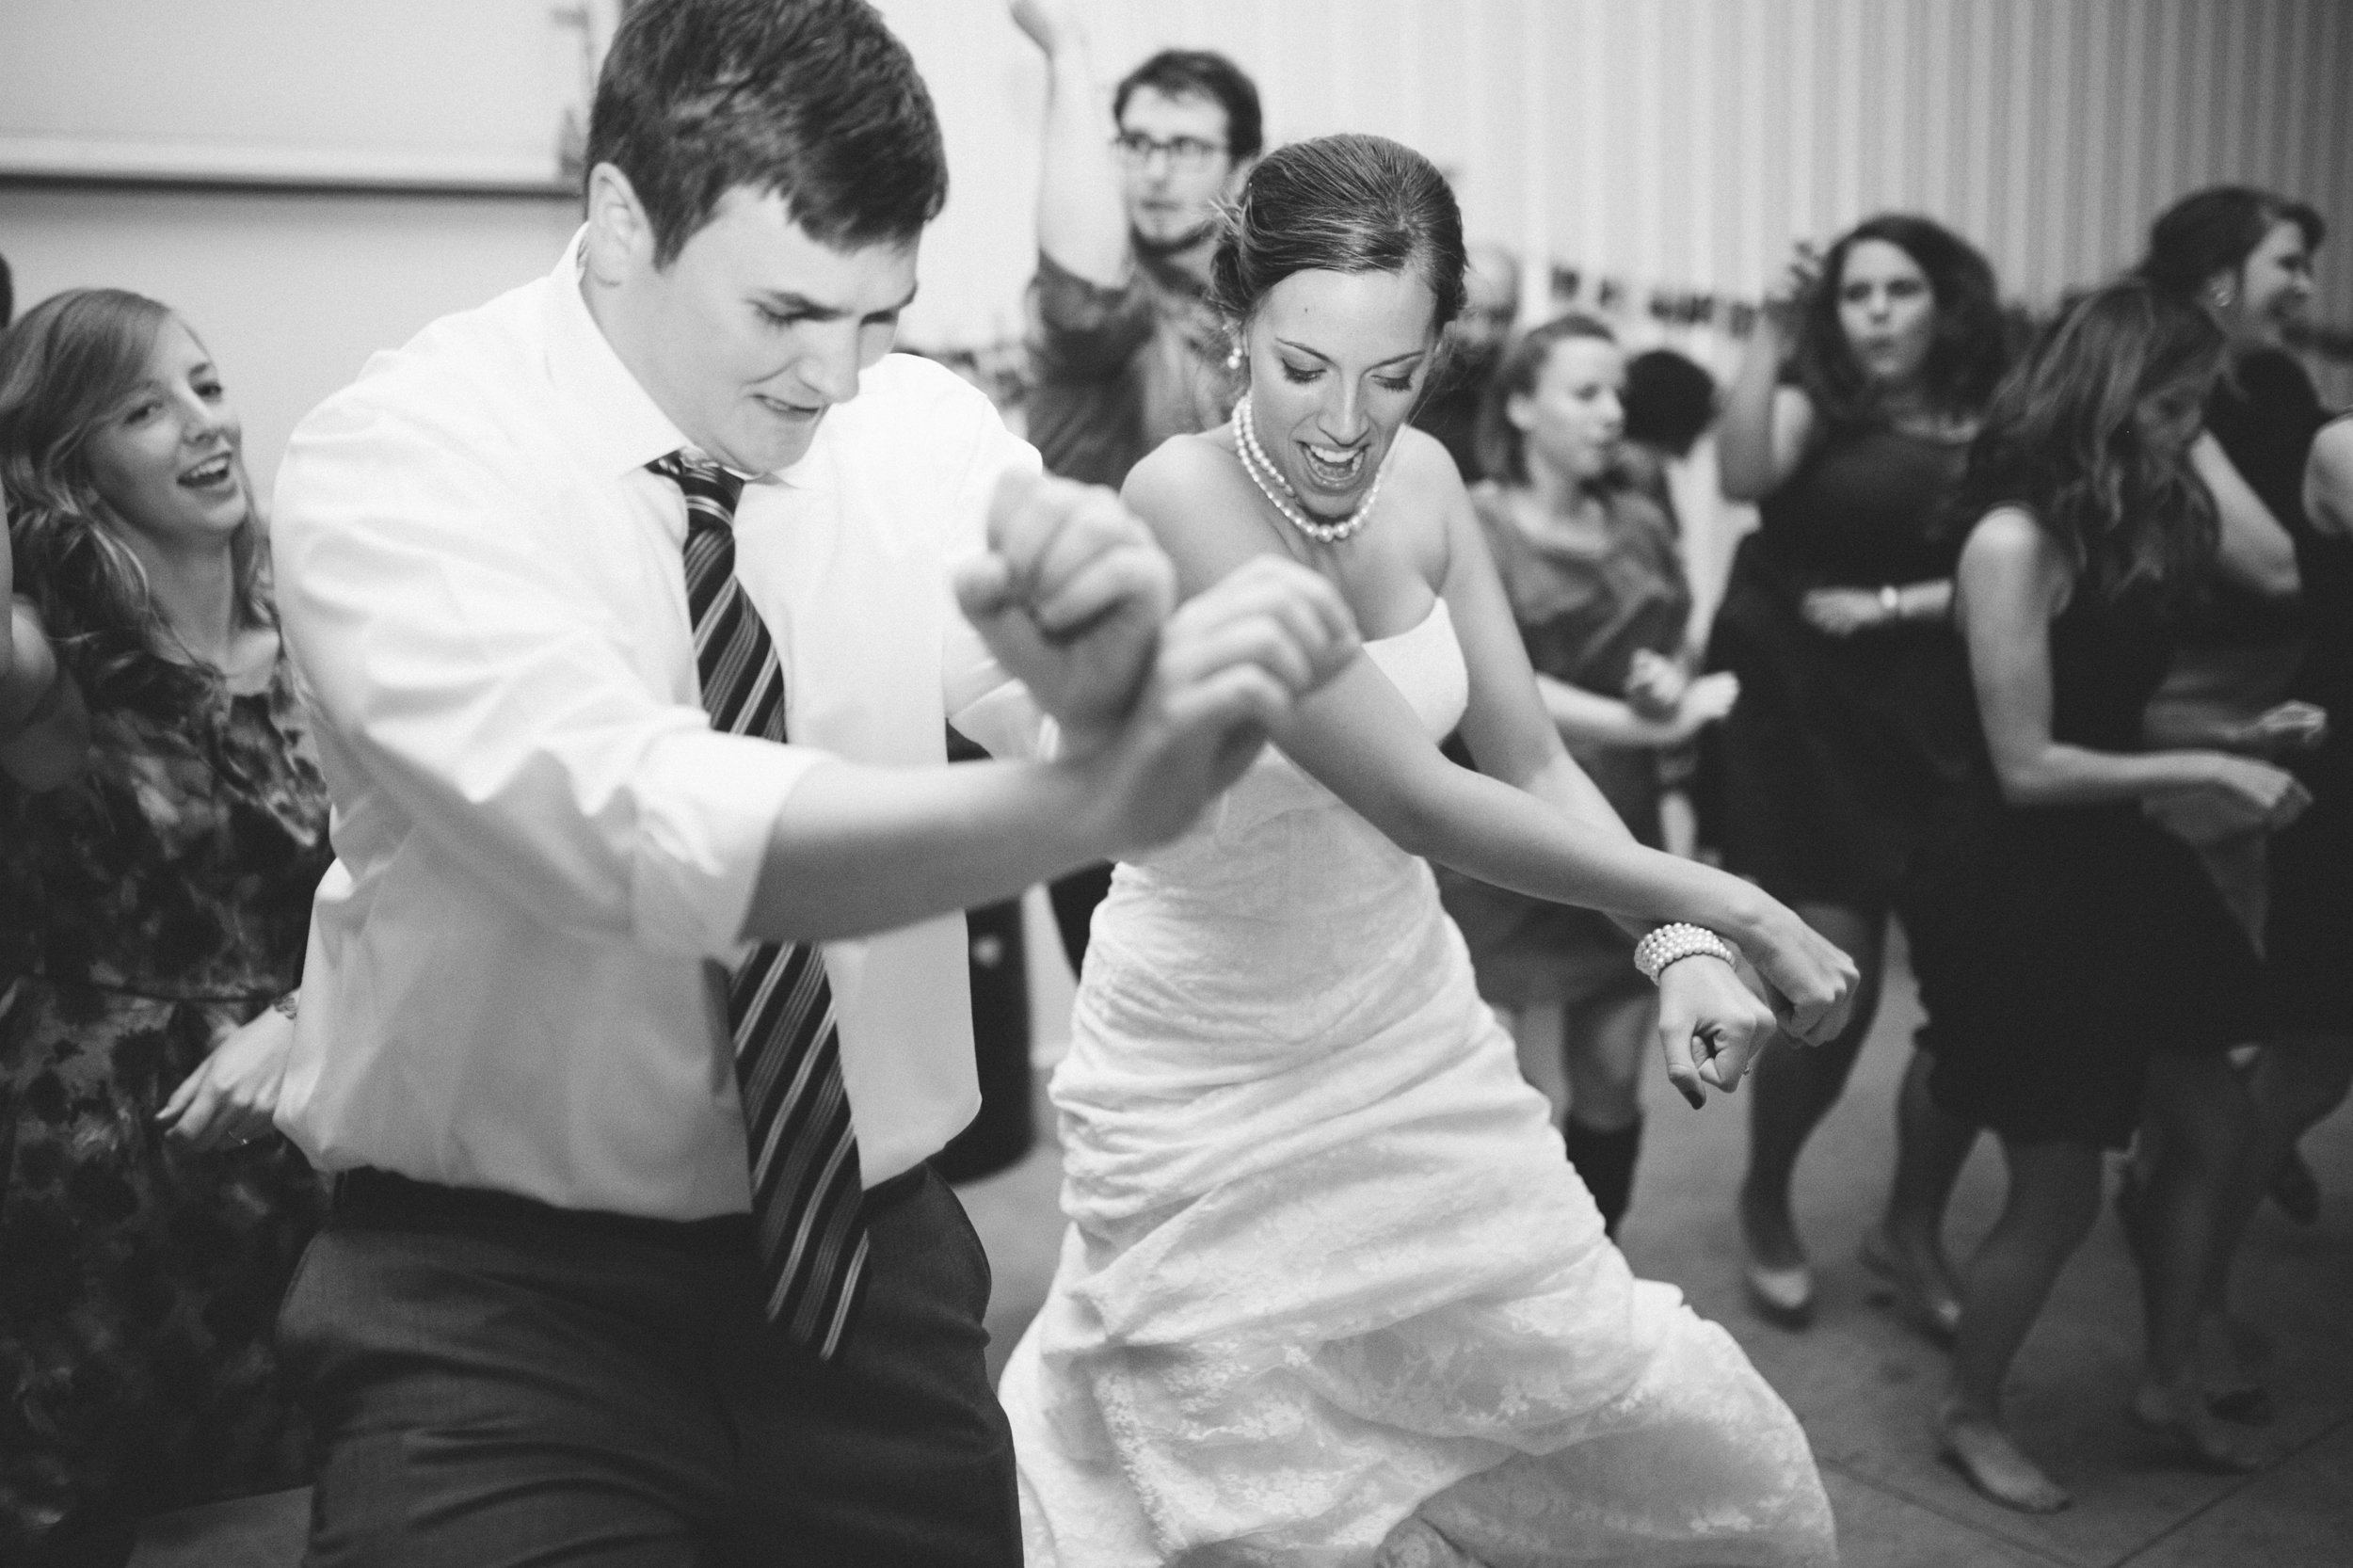 The Lovebirds showing their moves!